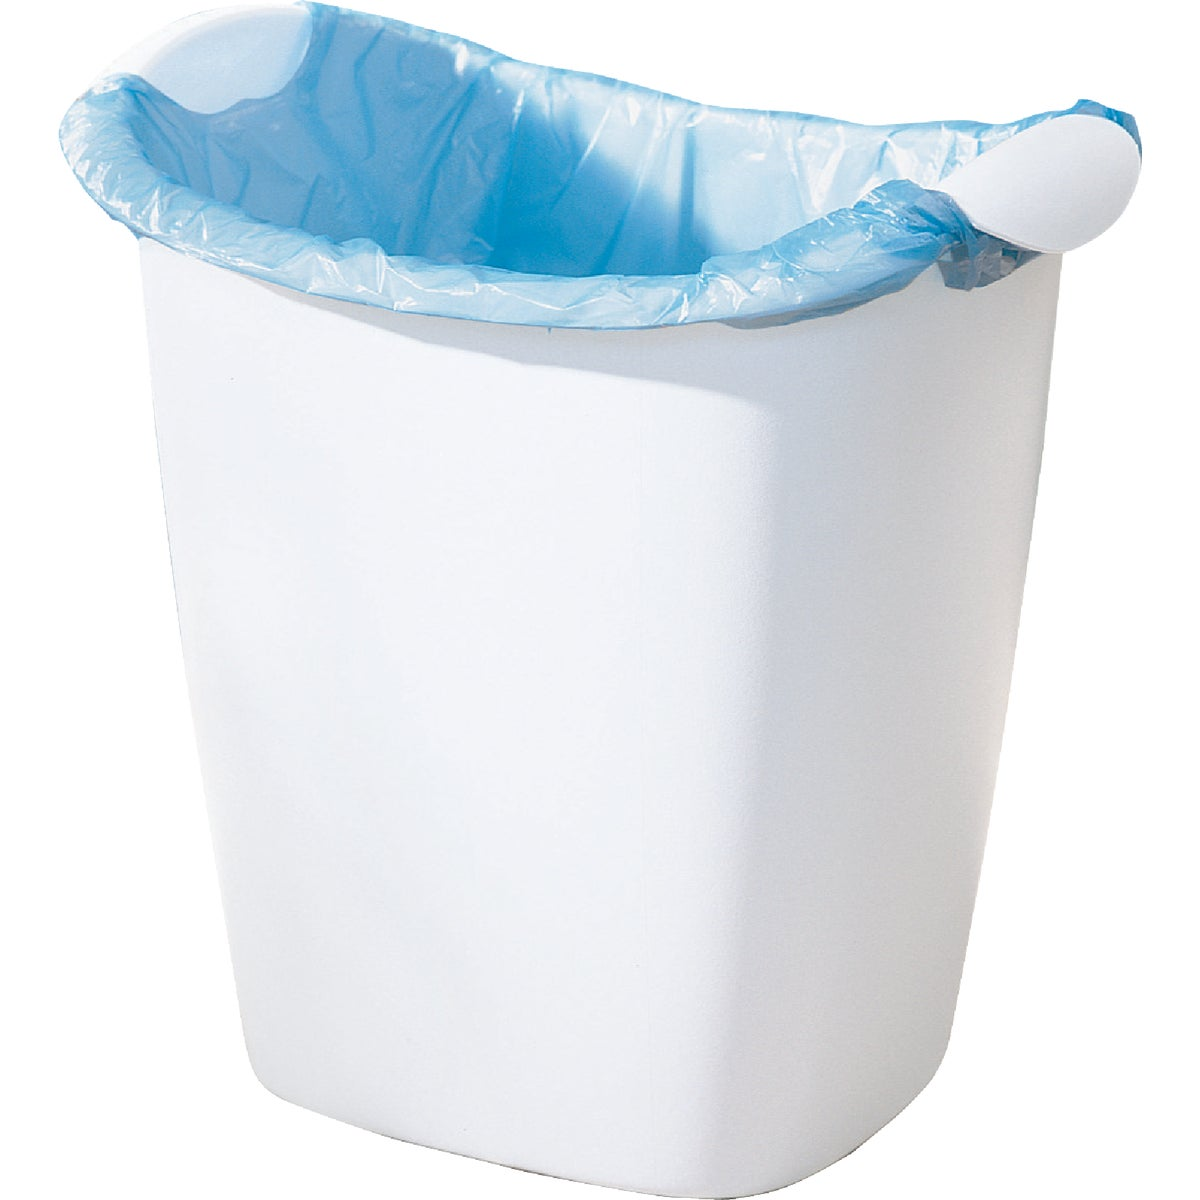 14QT WHITE WASTEBASKET - 2385-00 by Rubbermaid Home